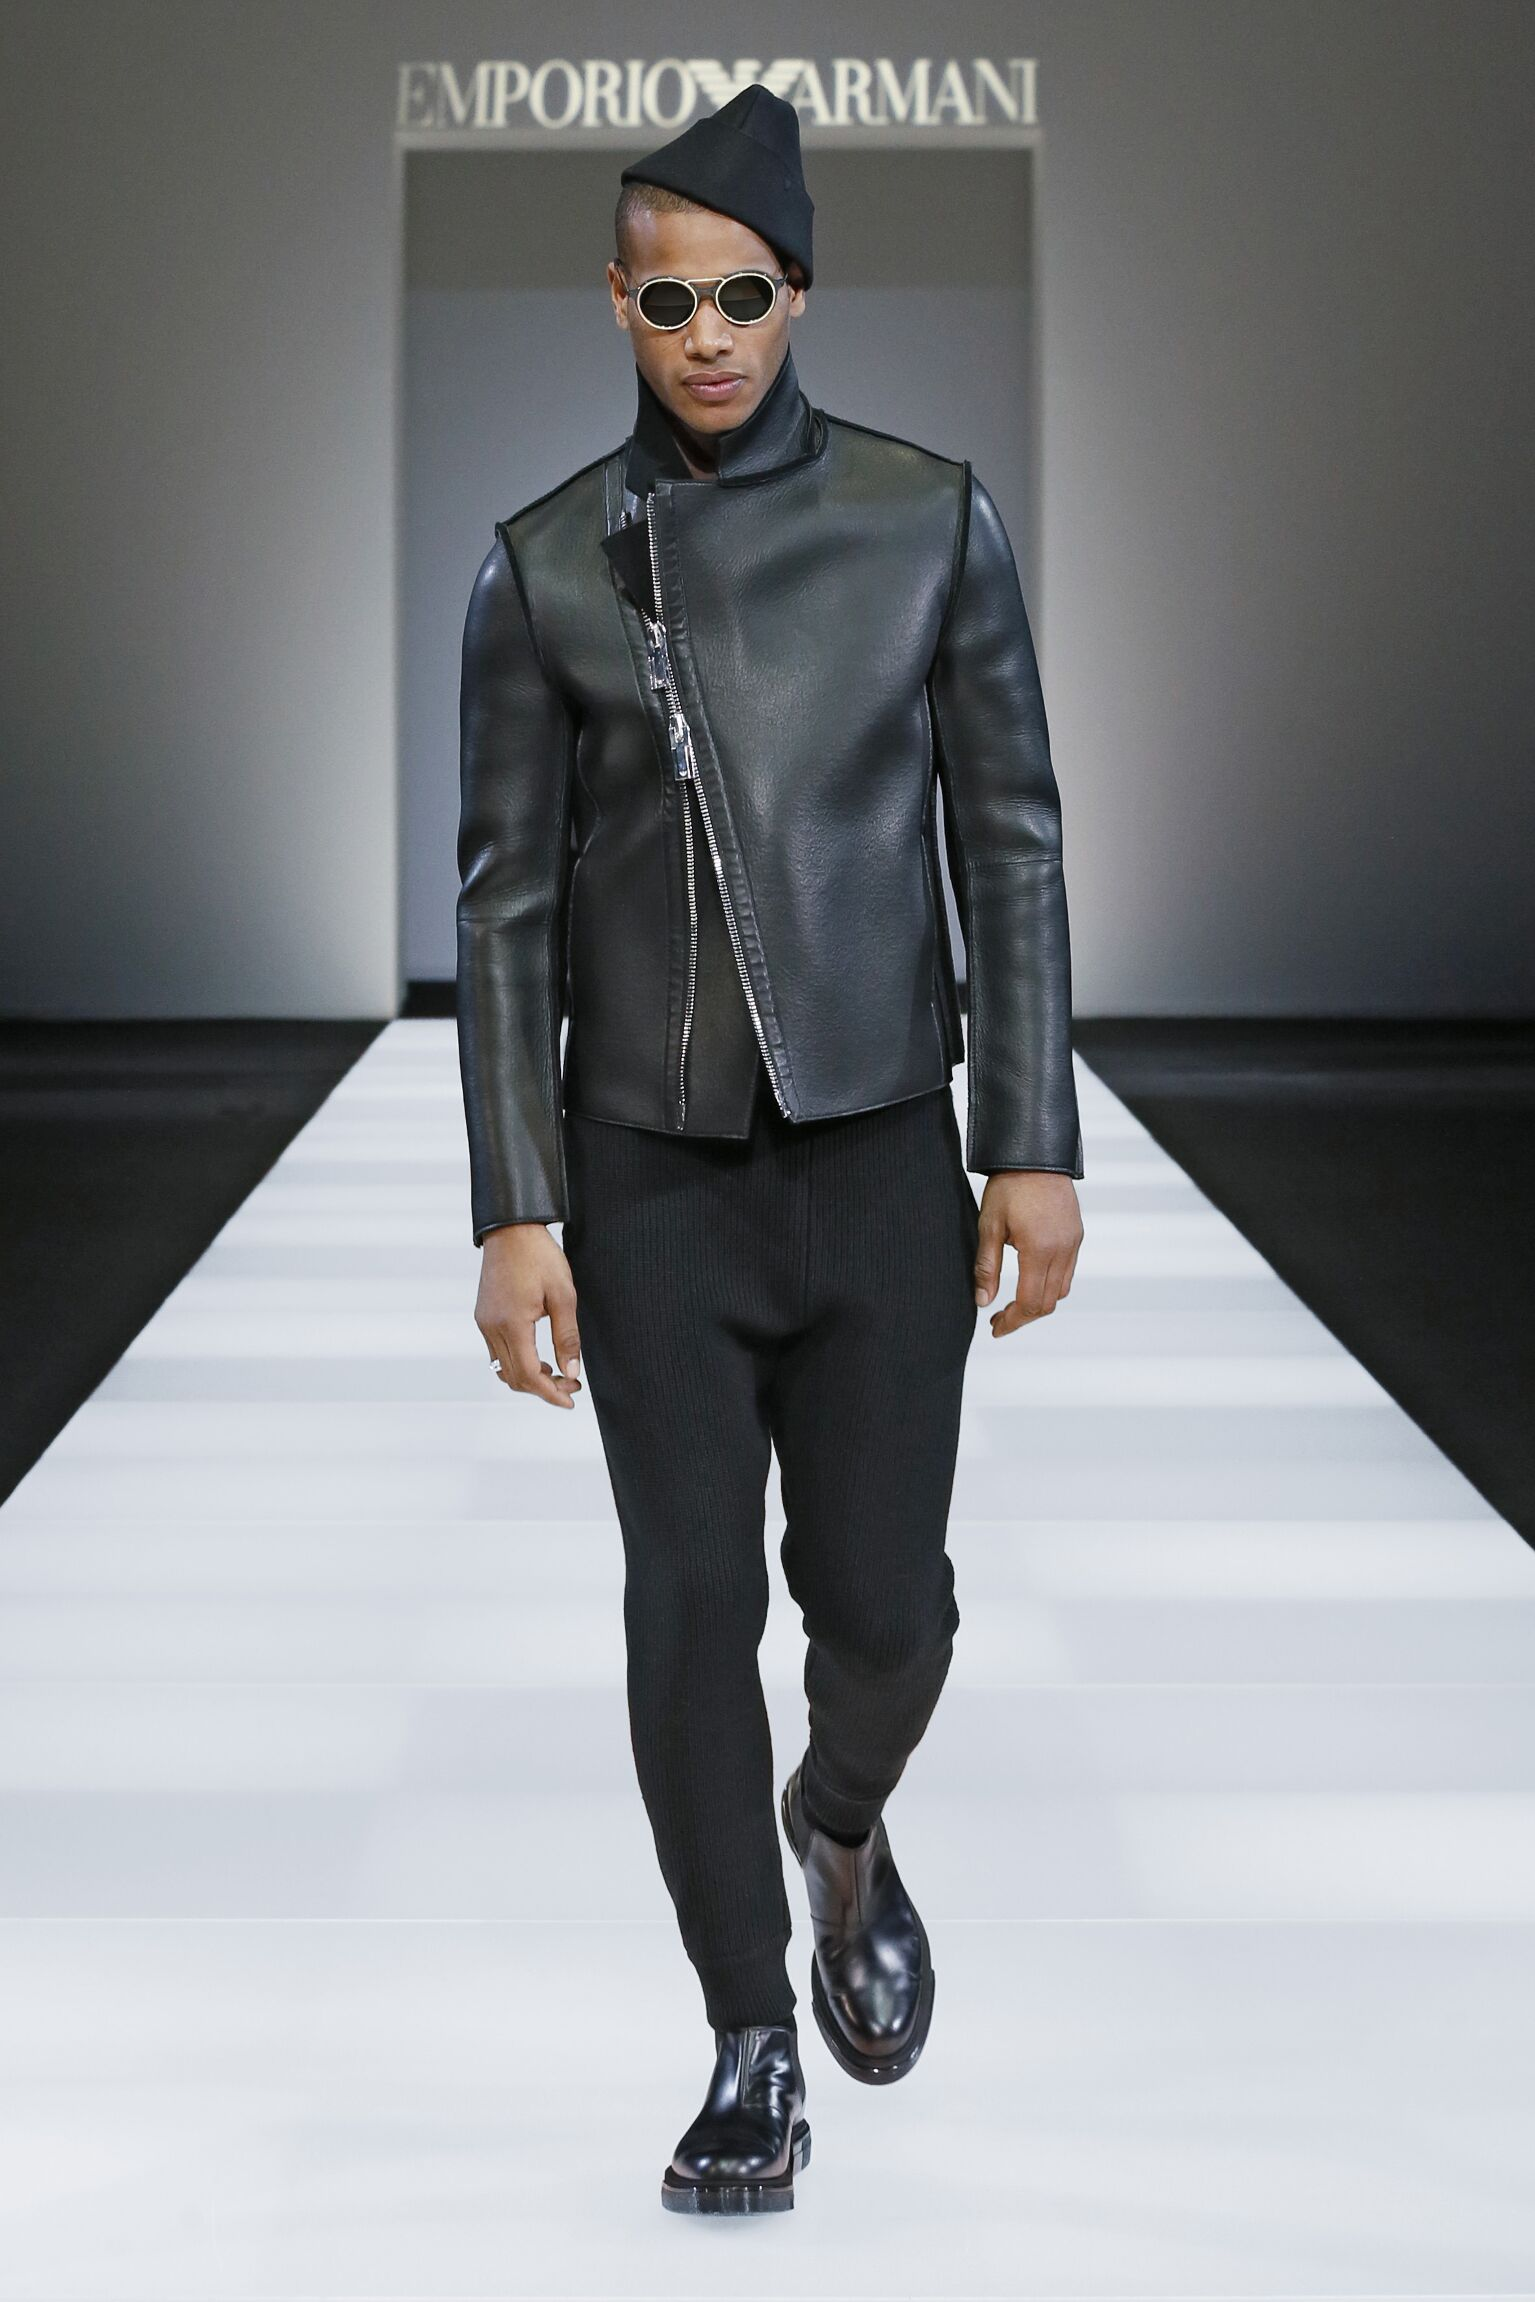 Fall Emporio Armani Collection Fashion Man